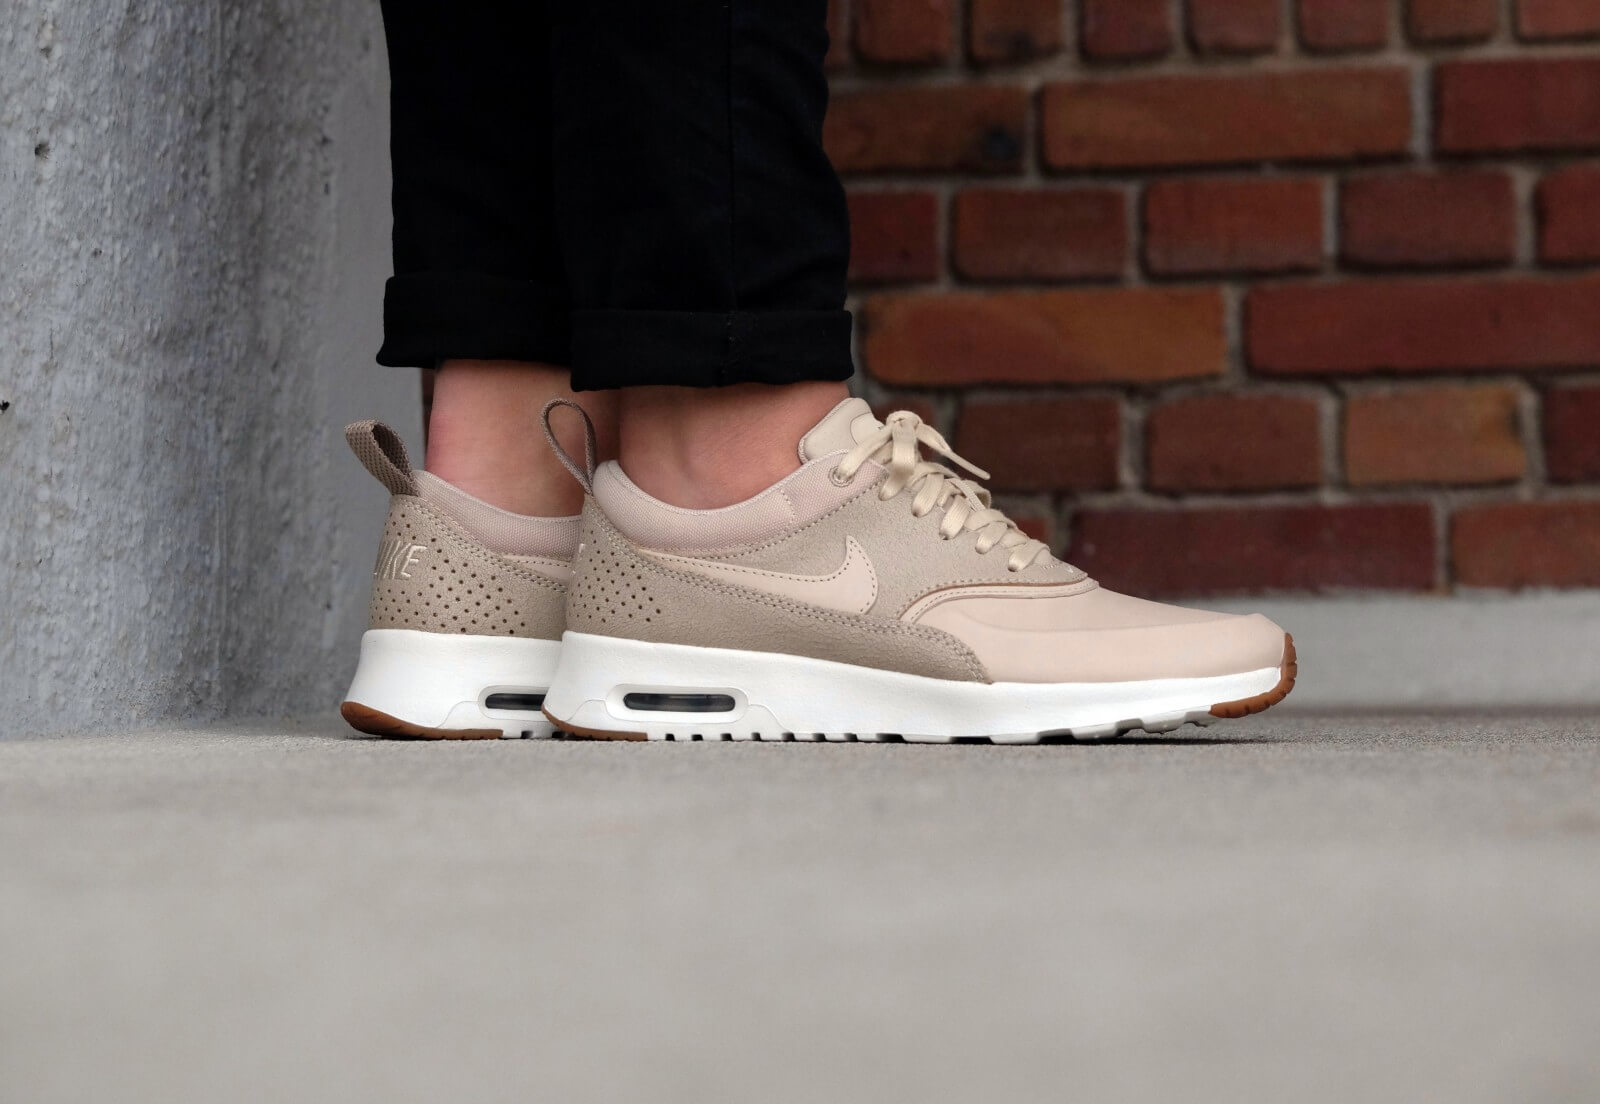 Details about Nike Womens Air Max Thea Prm Low Top Lace Up Running Sneaker, Beige, Size 6.0 8C